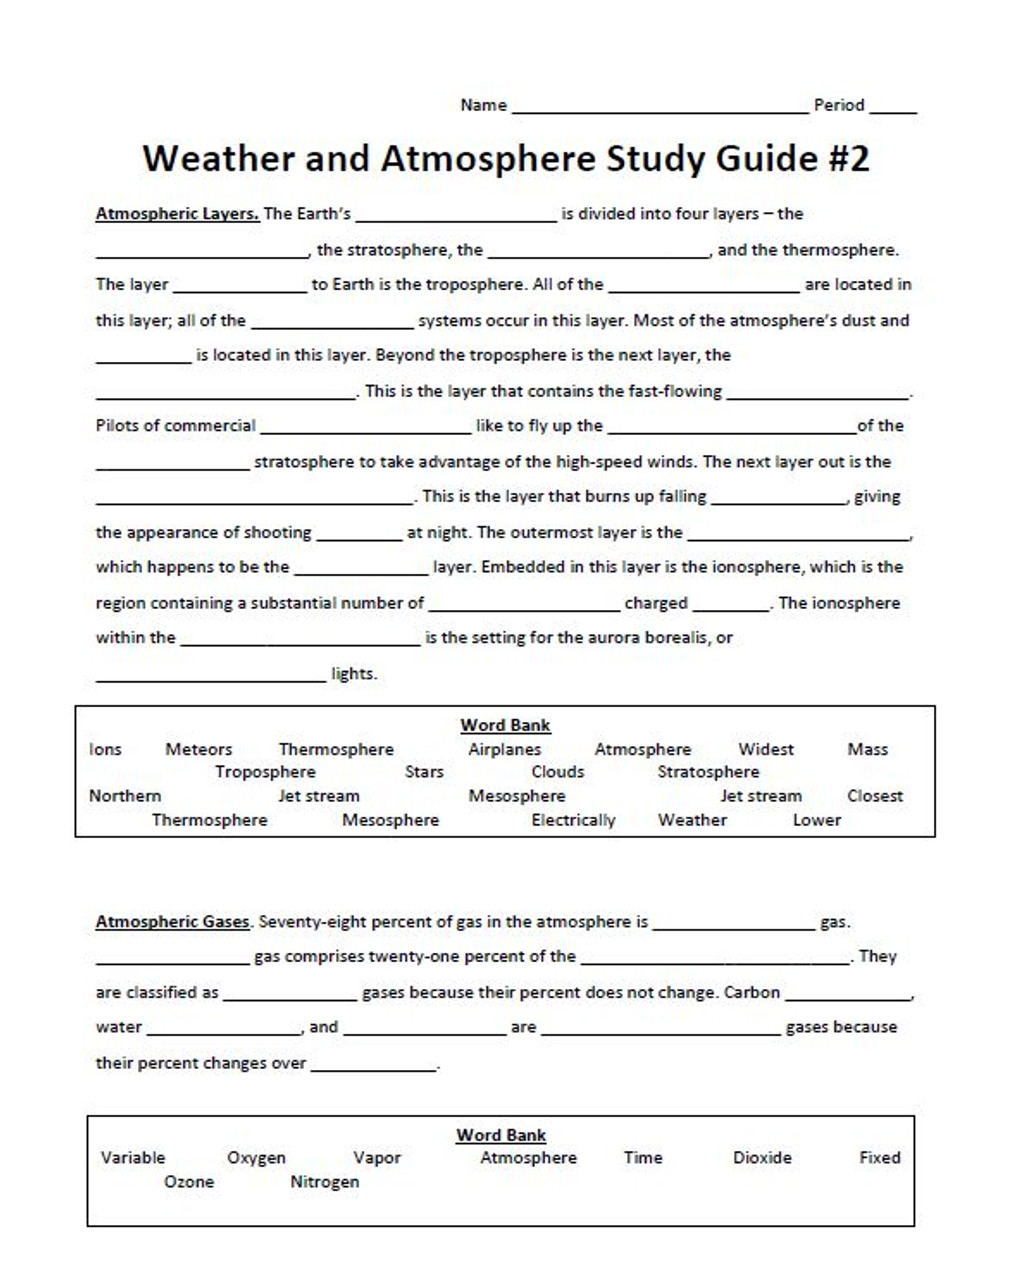 Weather and Atmosphere Study Guide #2 with a Key